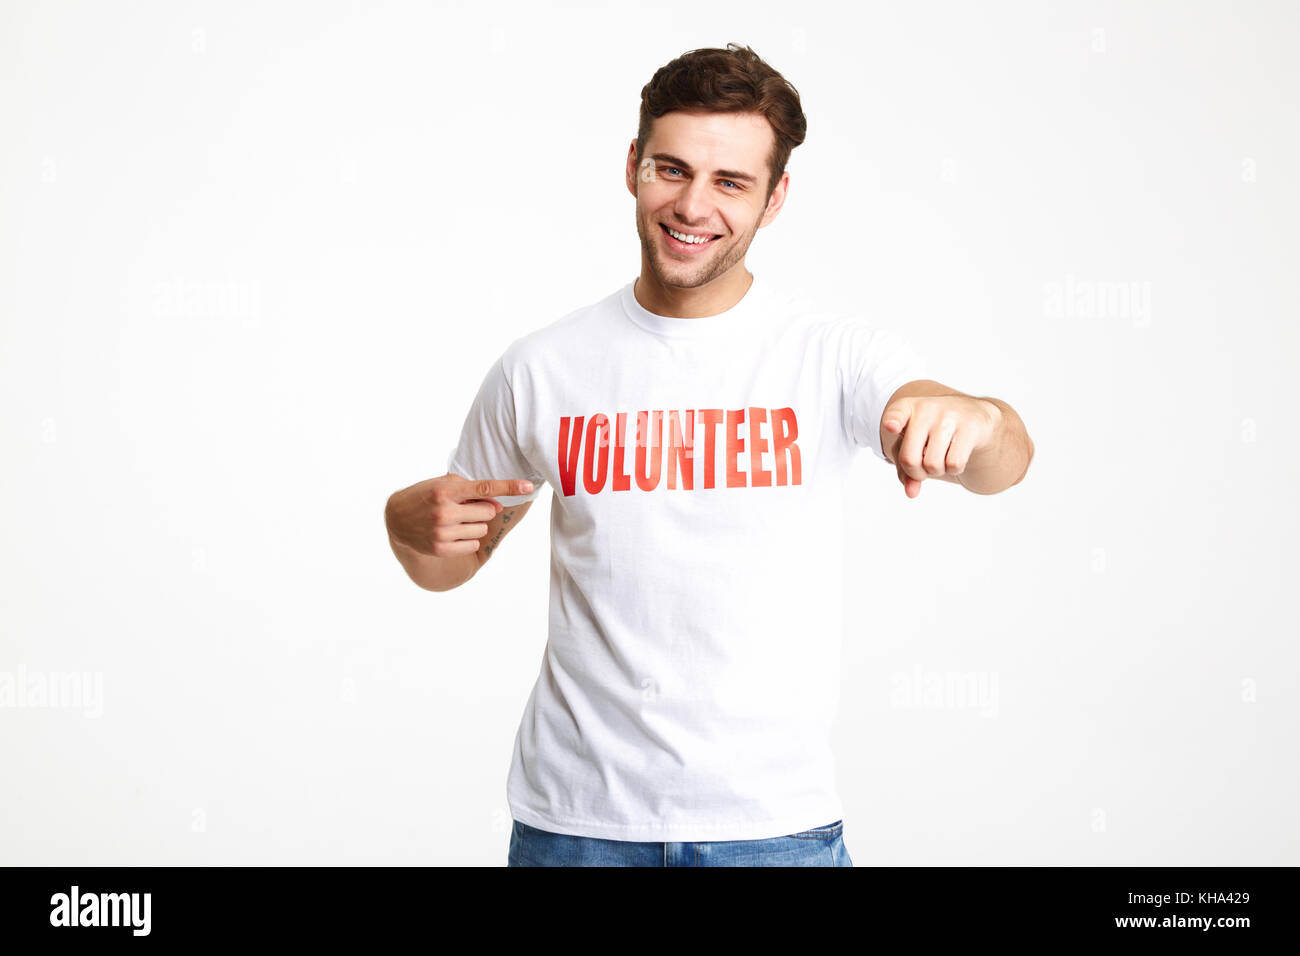 Portrait of a happy cheerful man wearing volunteer t-shirt pointing two fingers isolated over white background - Stock Image